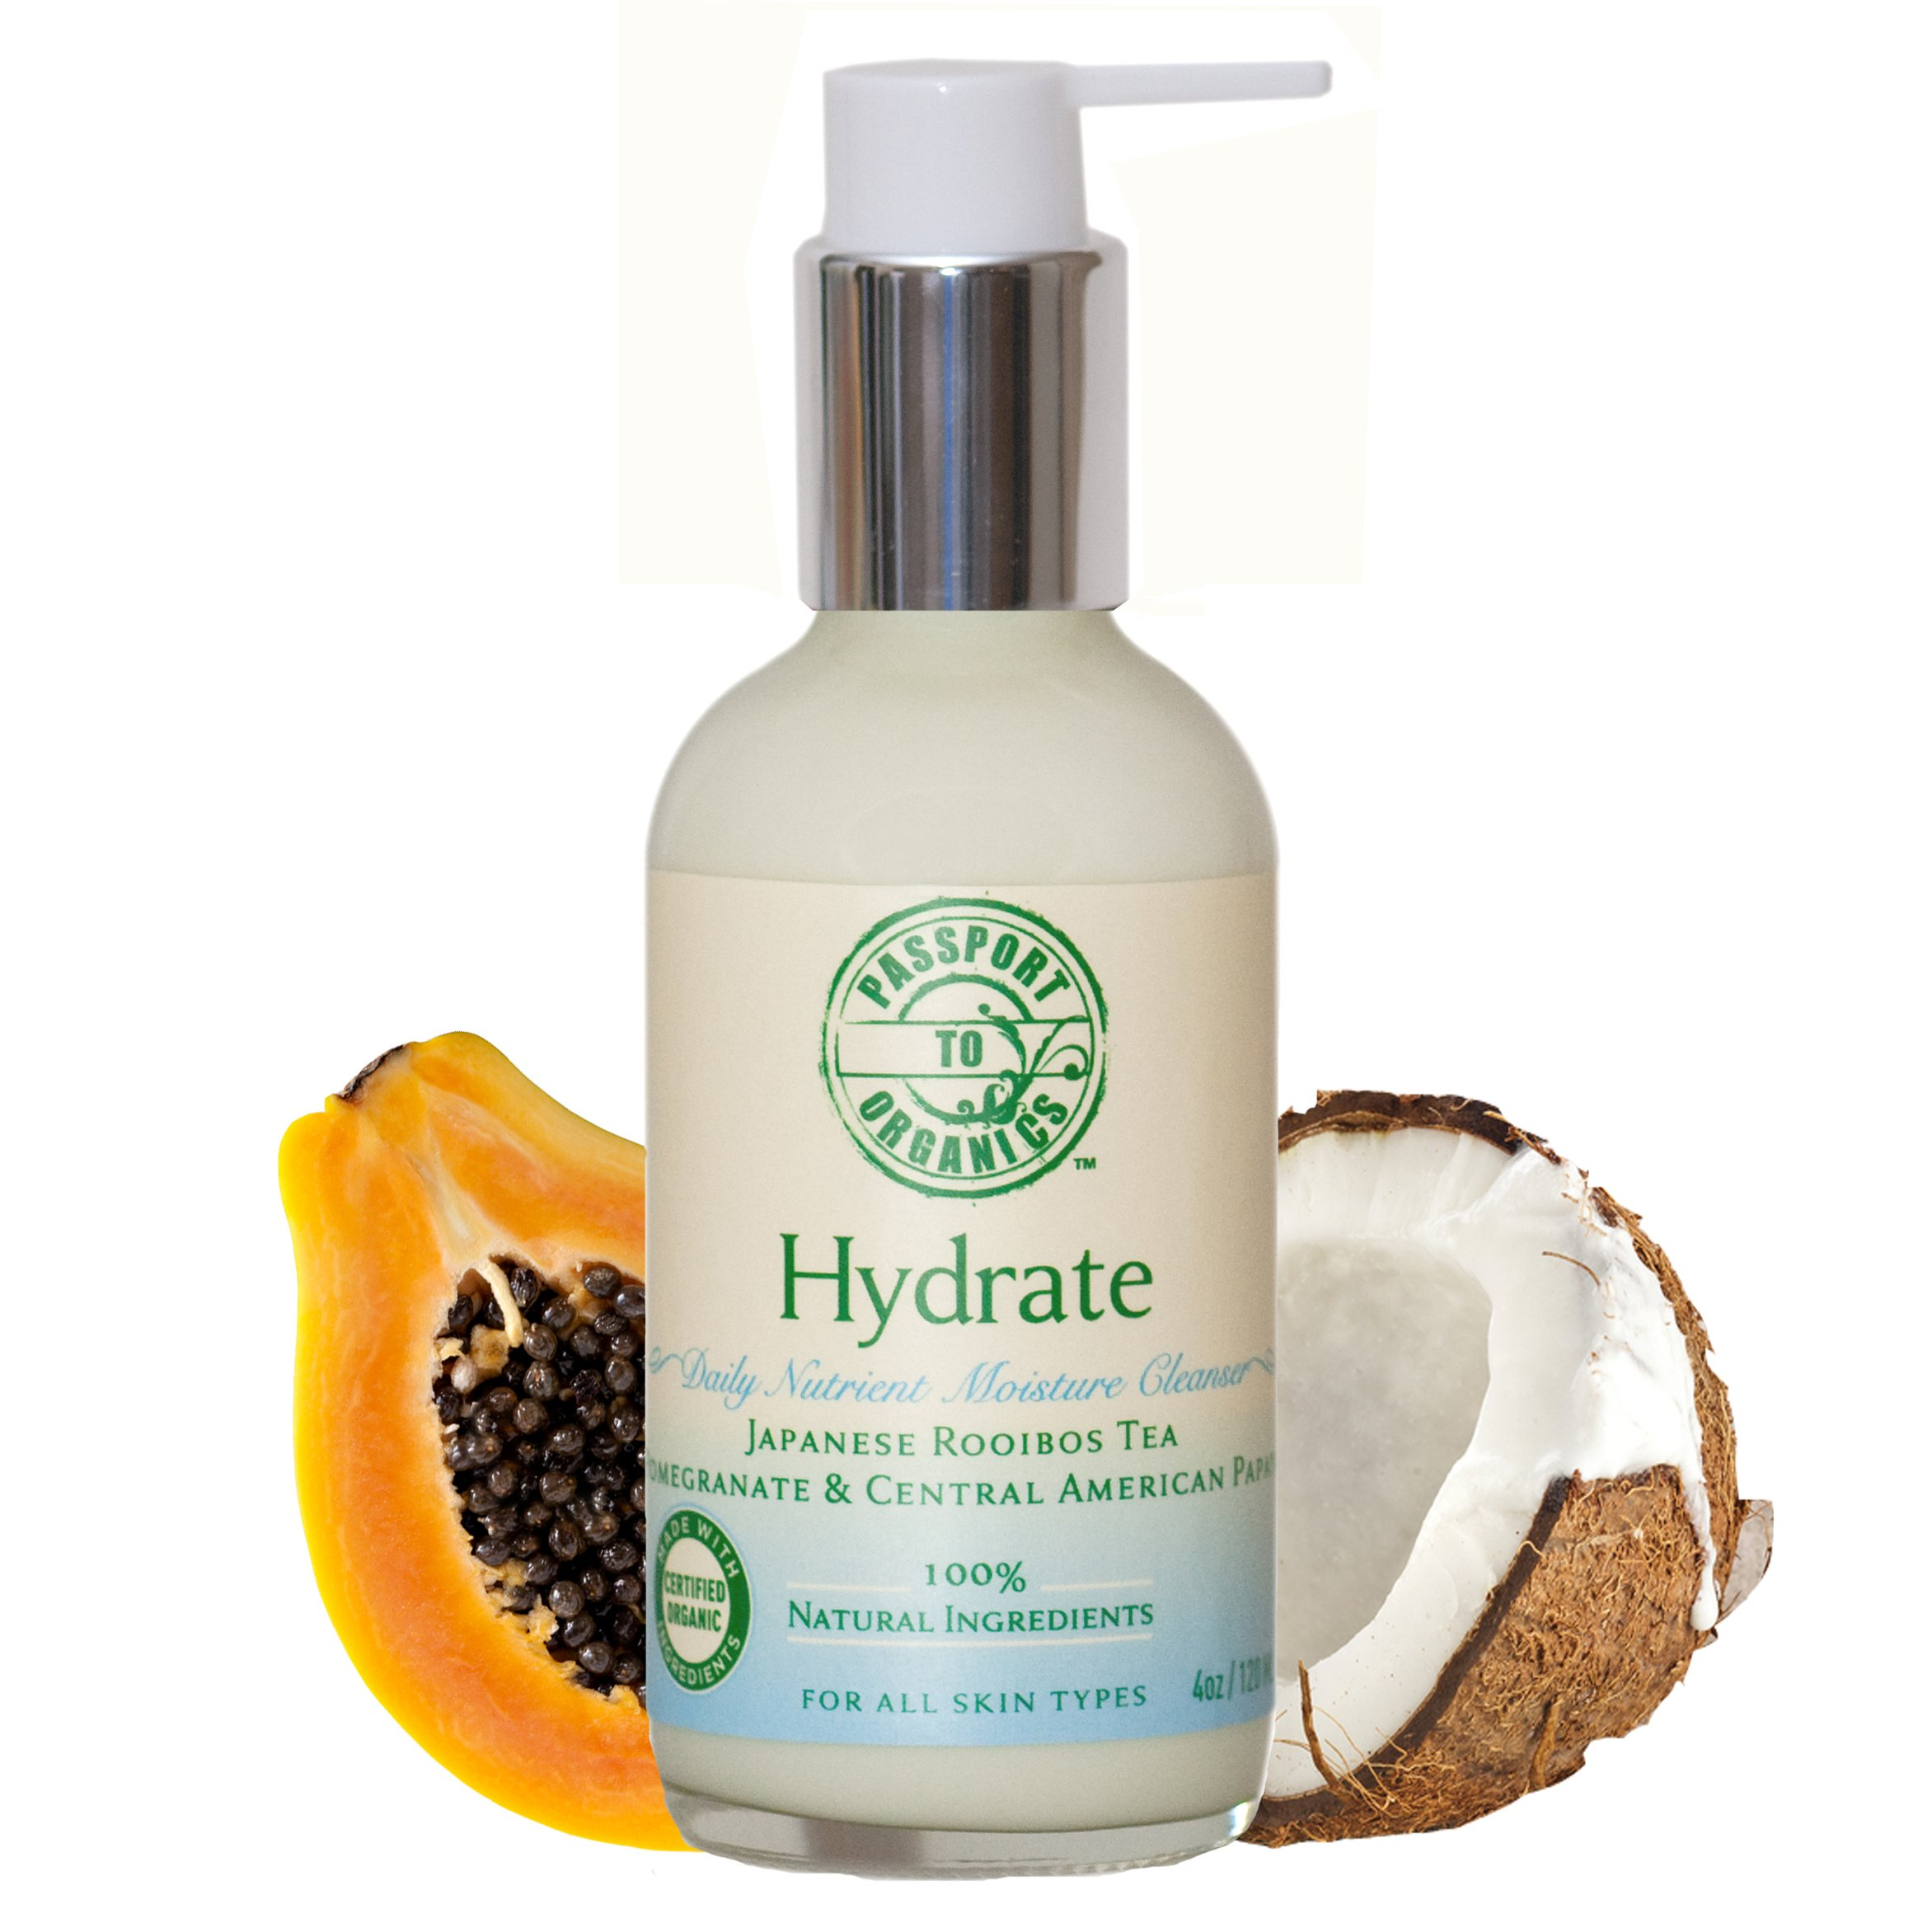 Organic Hydrate Daily Nutrient Moisture Cleanser with Japanese Rooibos Tea, Pomegranate & Papaya